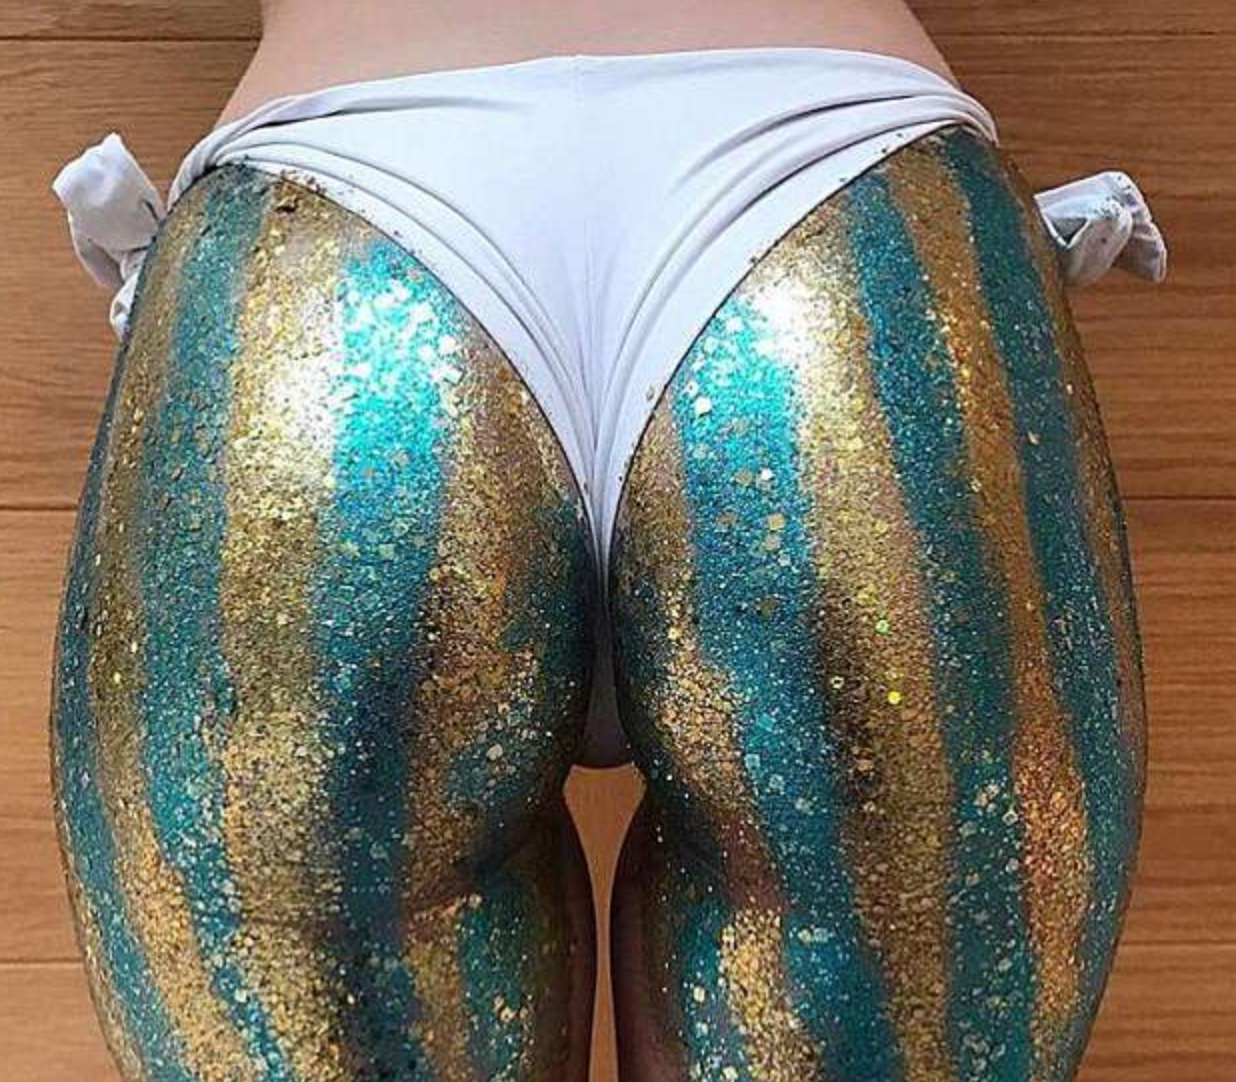 'Glitter Butts' Is Dubbed the Hottest New Trend for the Summer [SFW PICS]